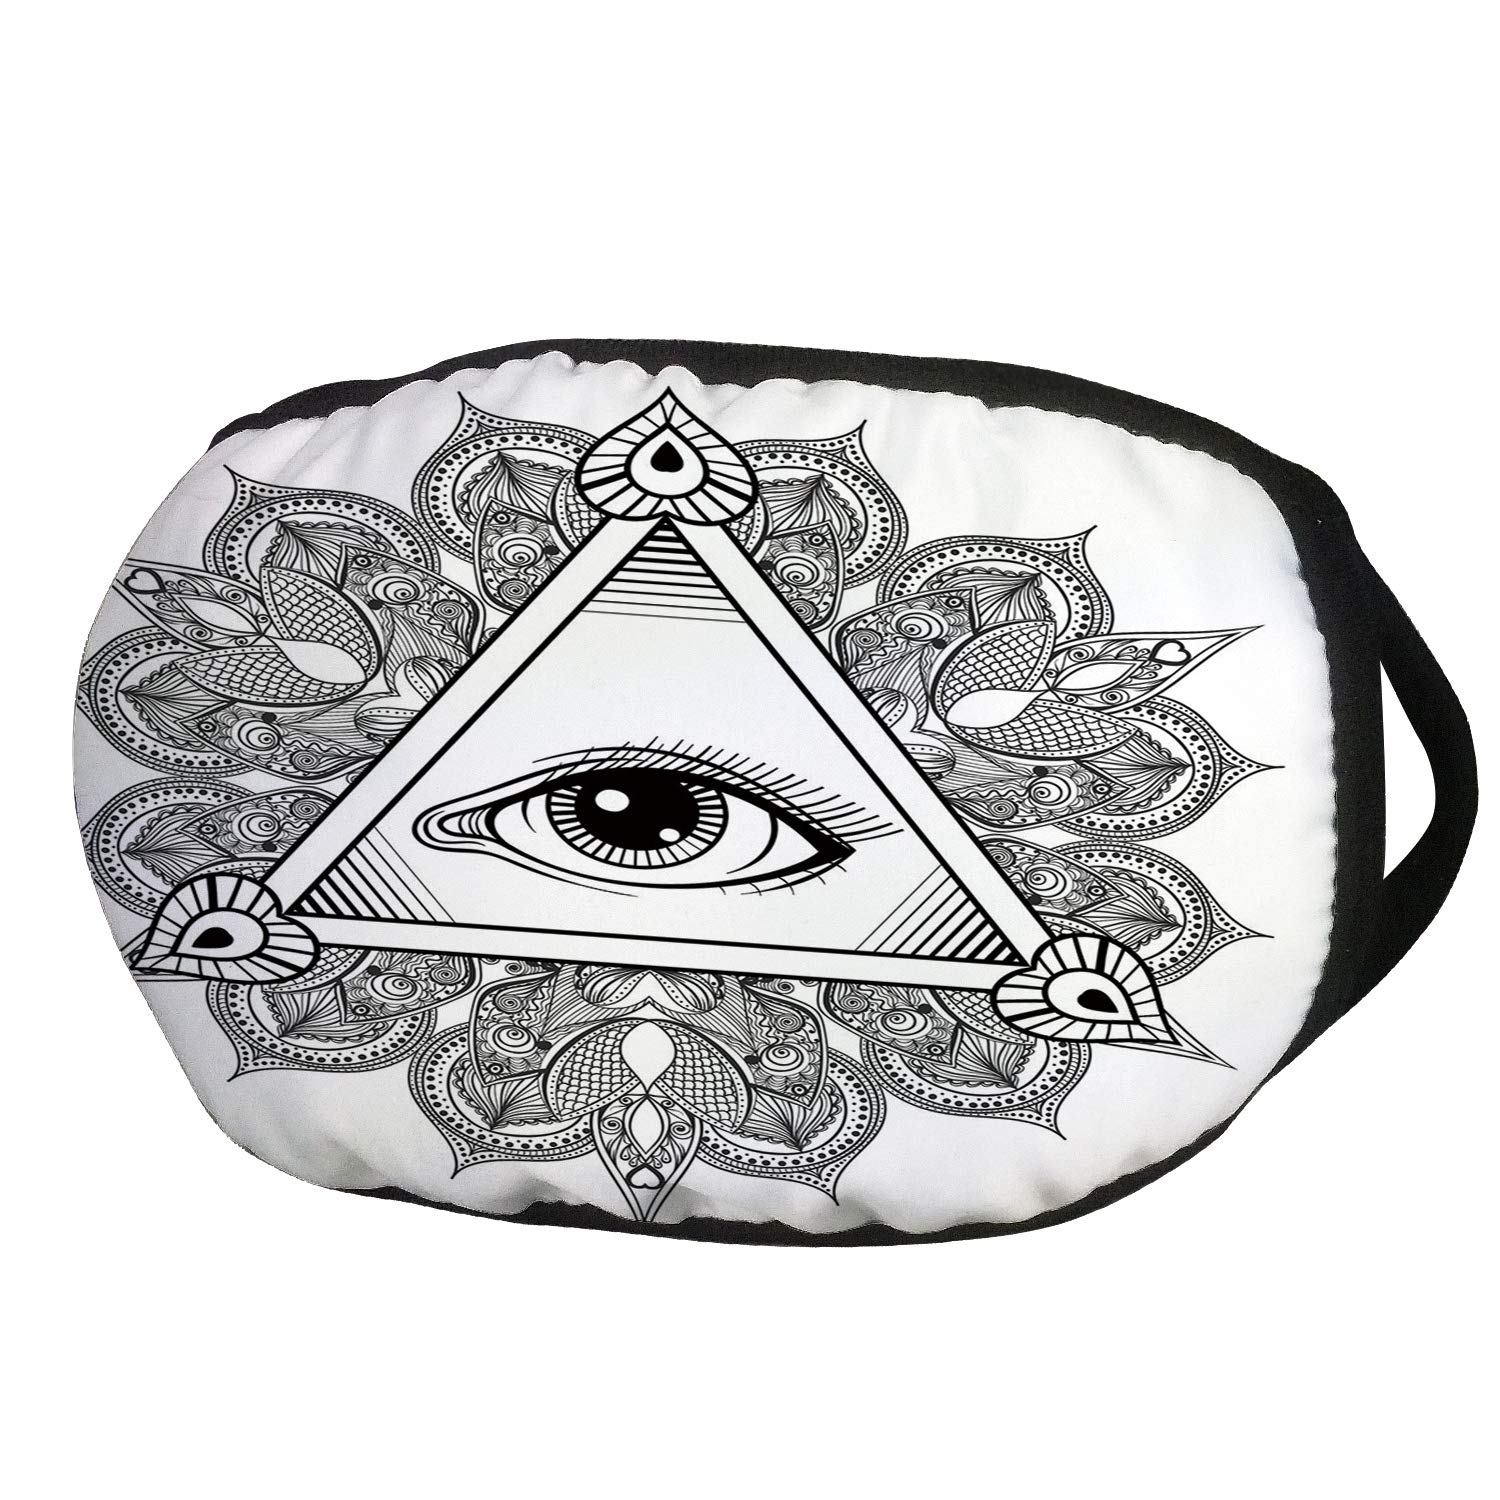 1500x1500 Fashion Cotton Antidust Face Mouth Mask, Eye, Vintage All Seeing